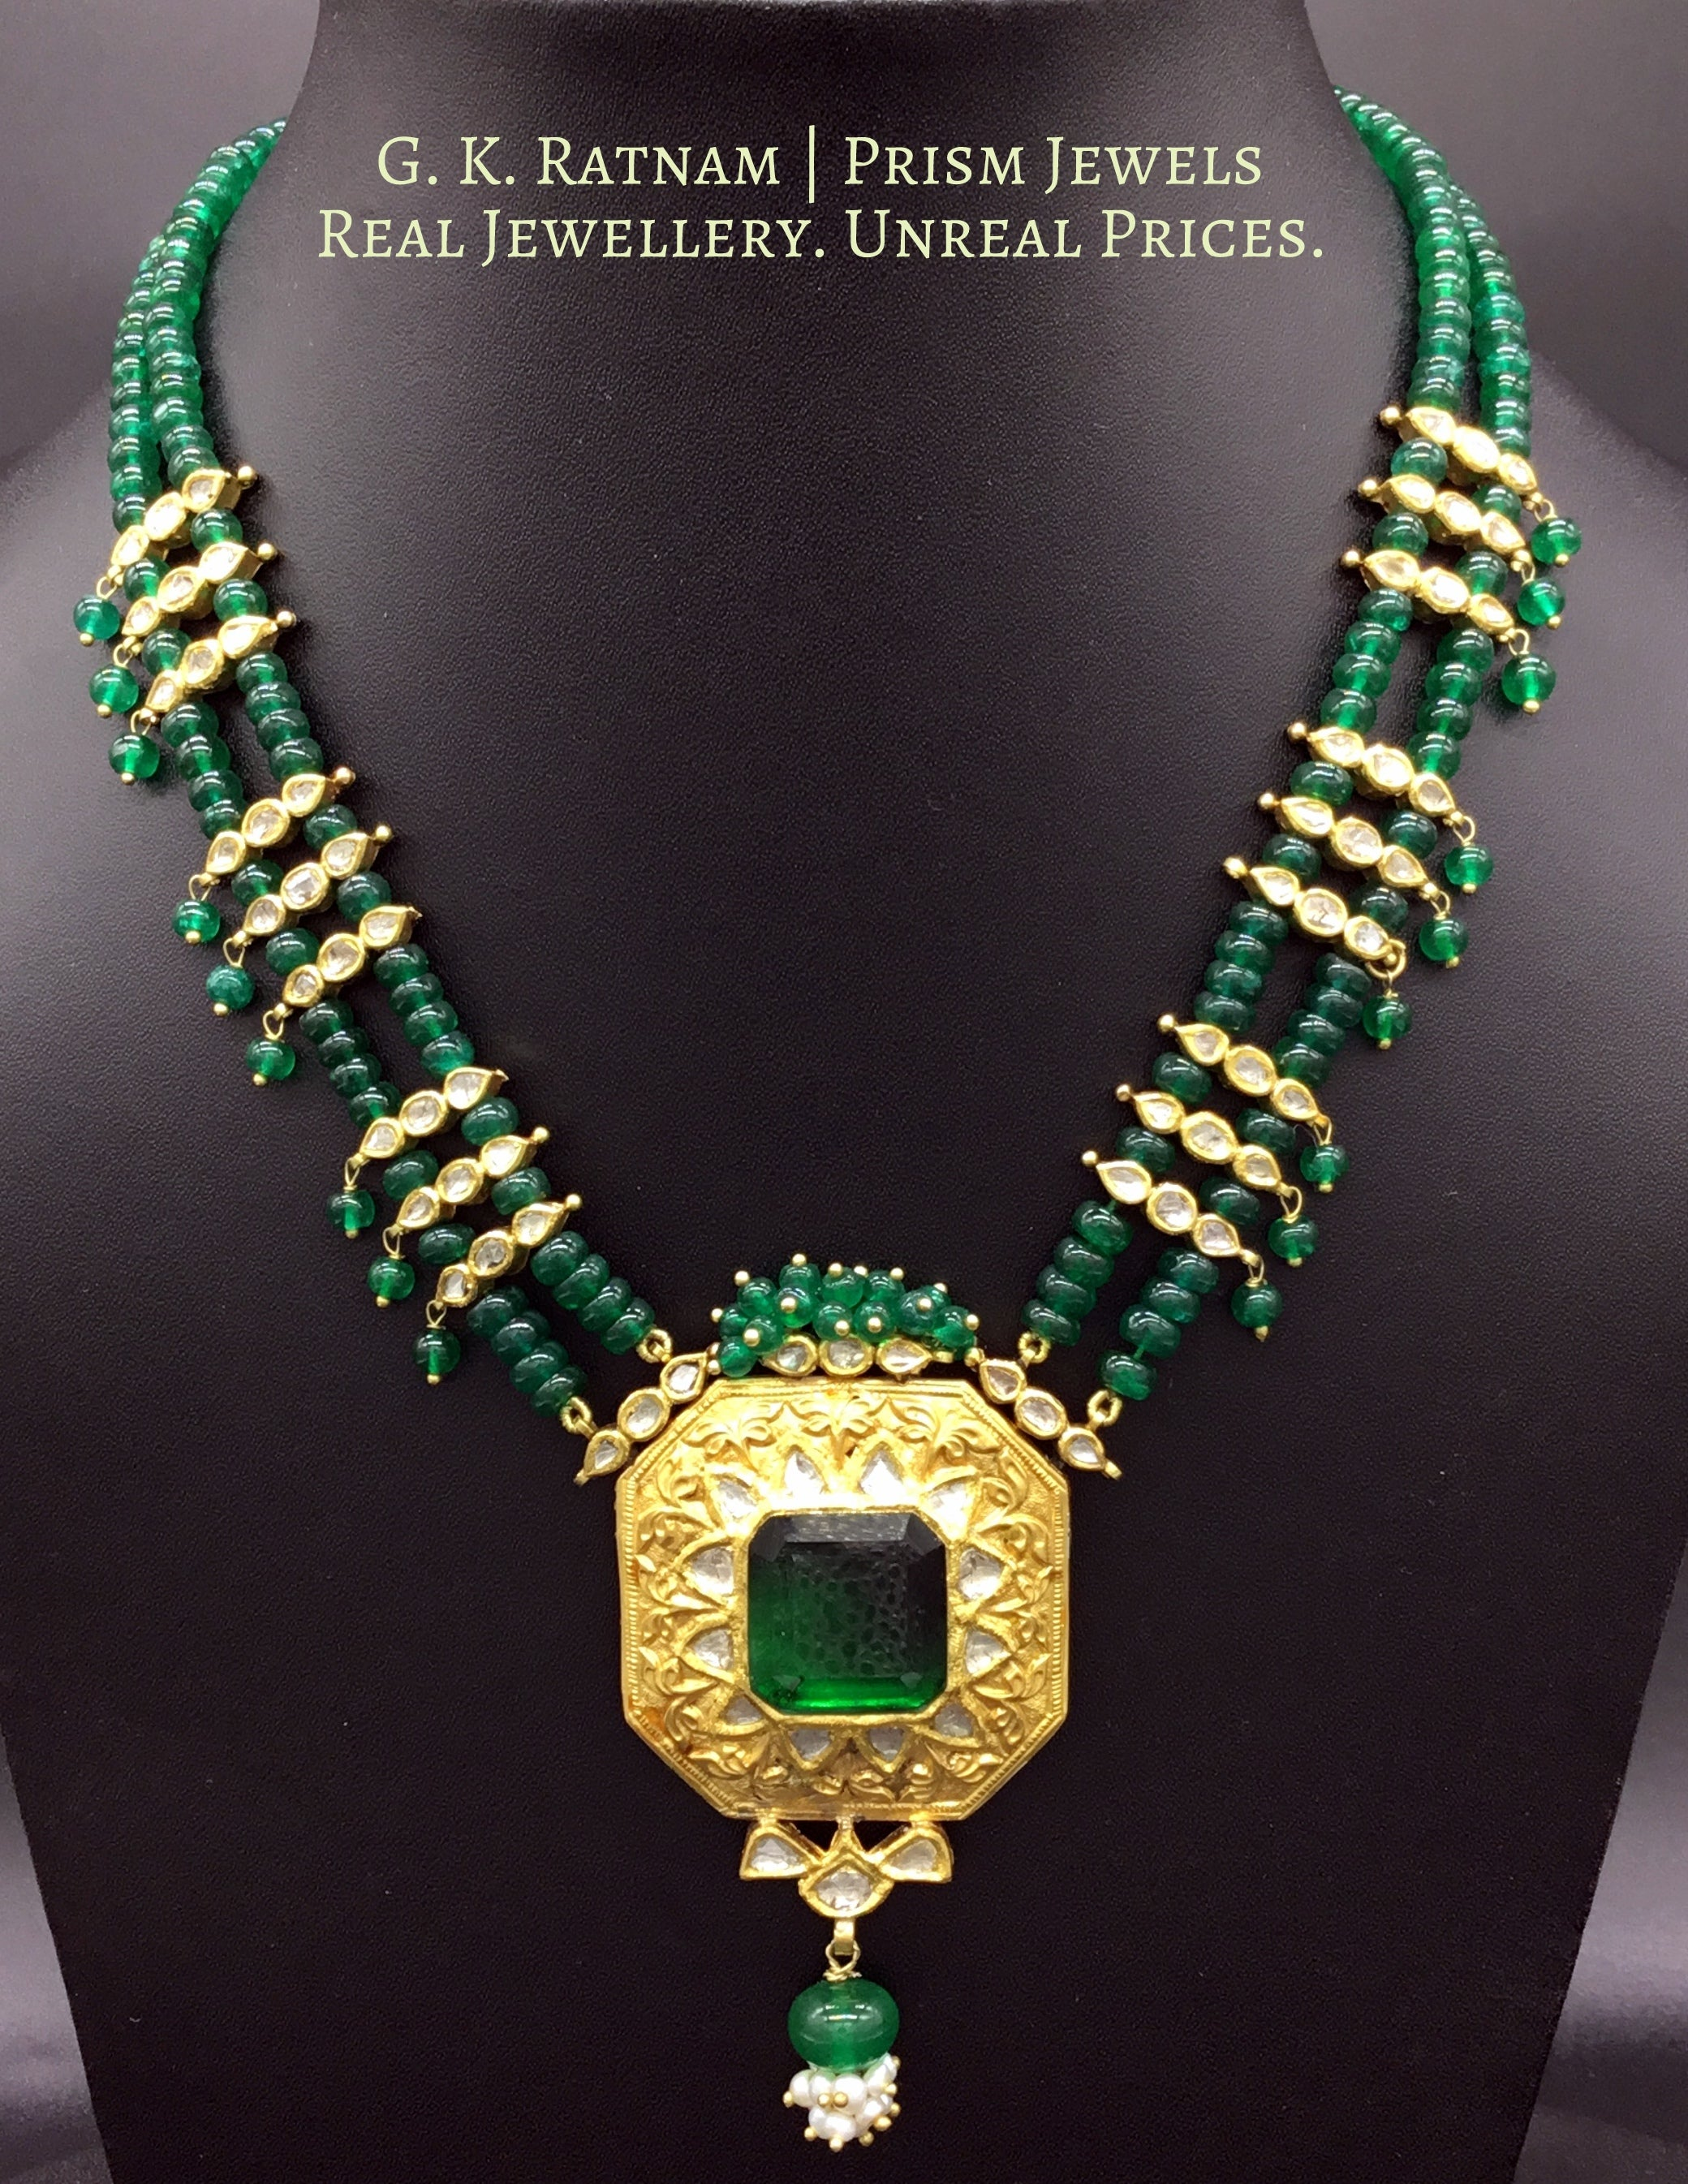 22k Gold and Diamond Polki green-center Octagon Pendant Set with polki leafs strung in natural emerald beads - G. K. Ratnam